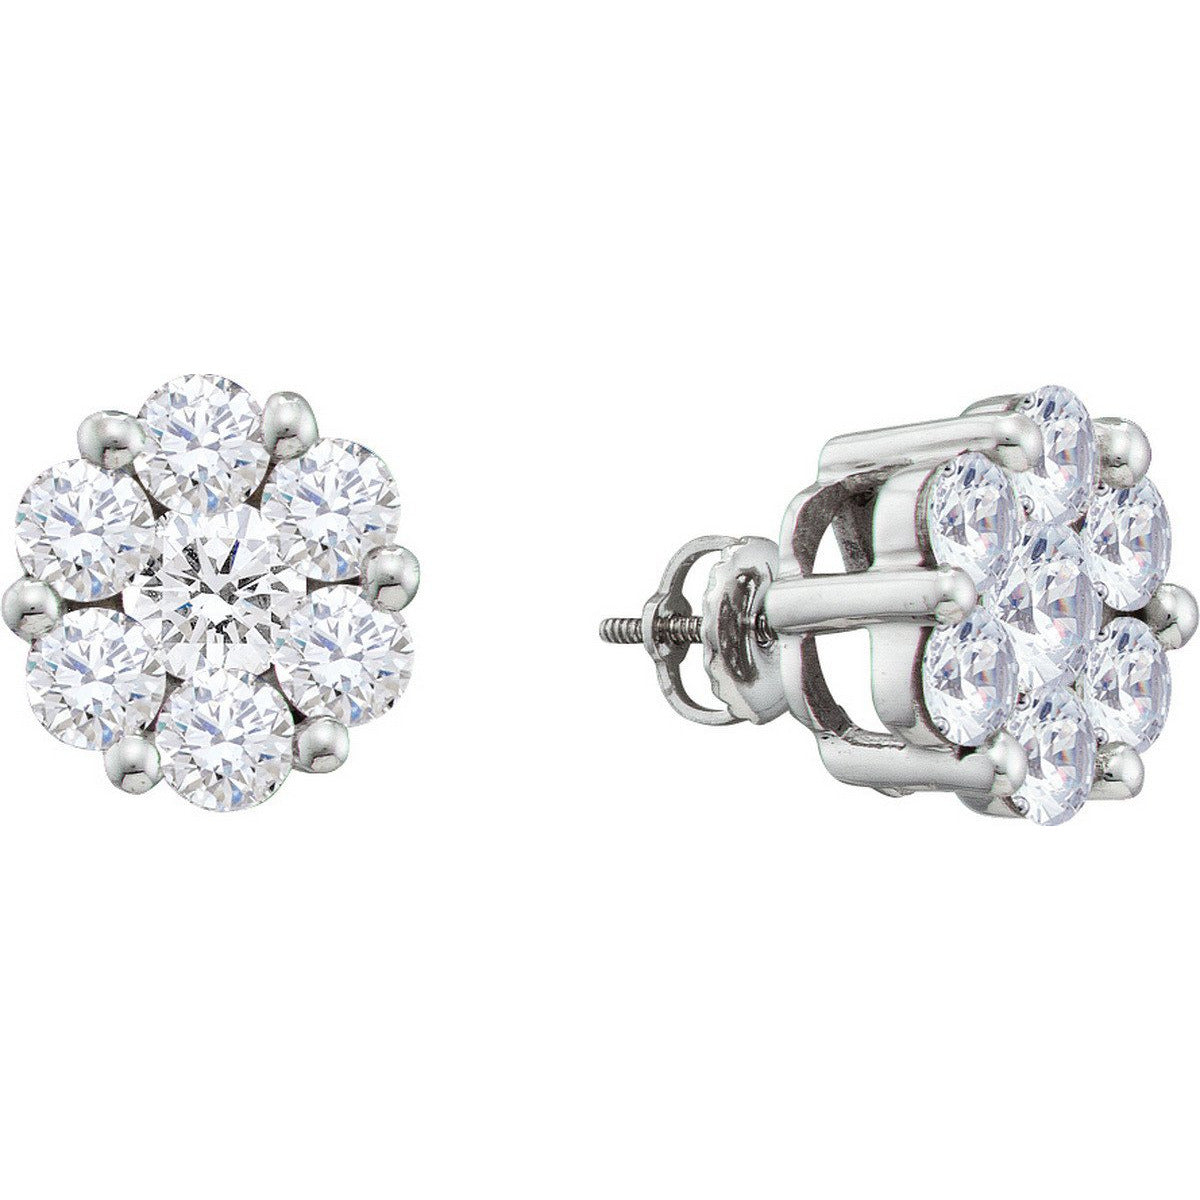 14kt White Gold Womens Round Diamond Flower Cluster Screwback Stud Earrings 2.00 Cttw 12394 - shirin-diamonds